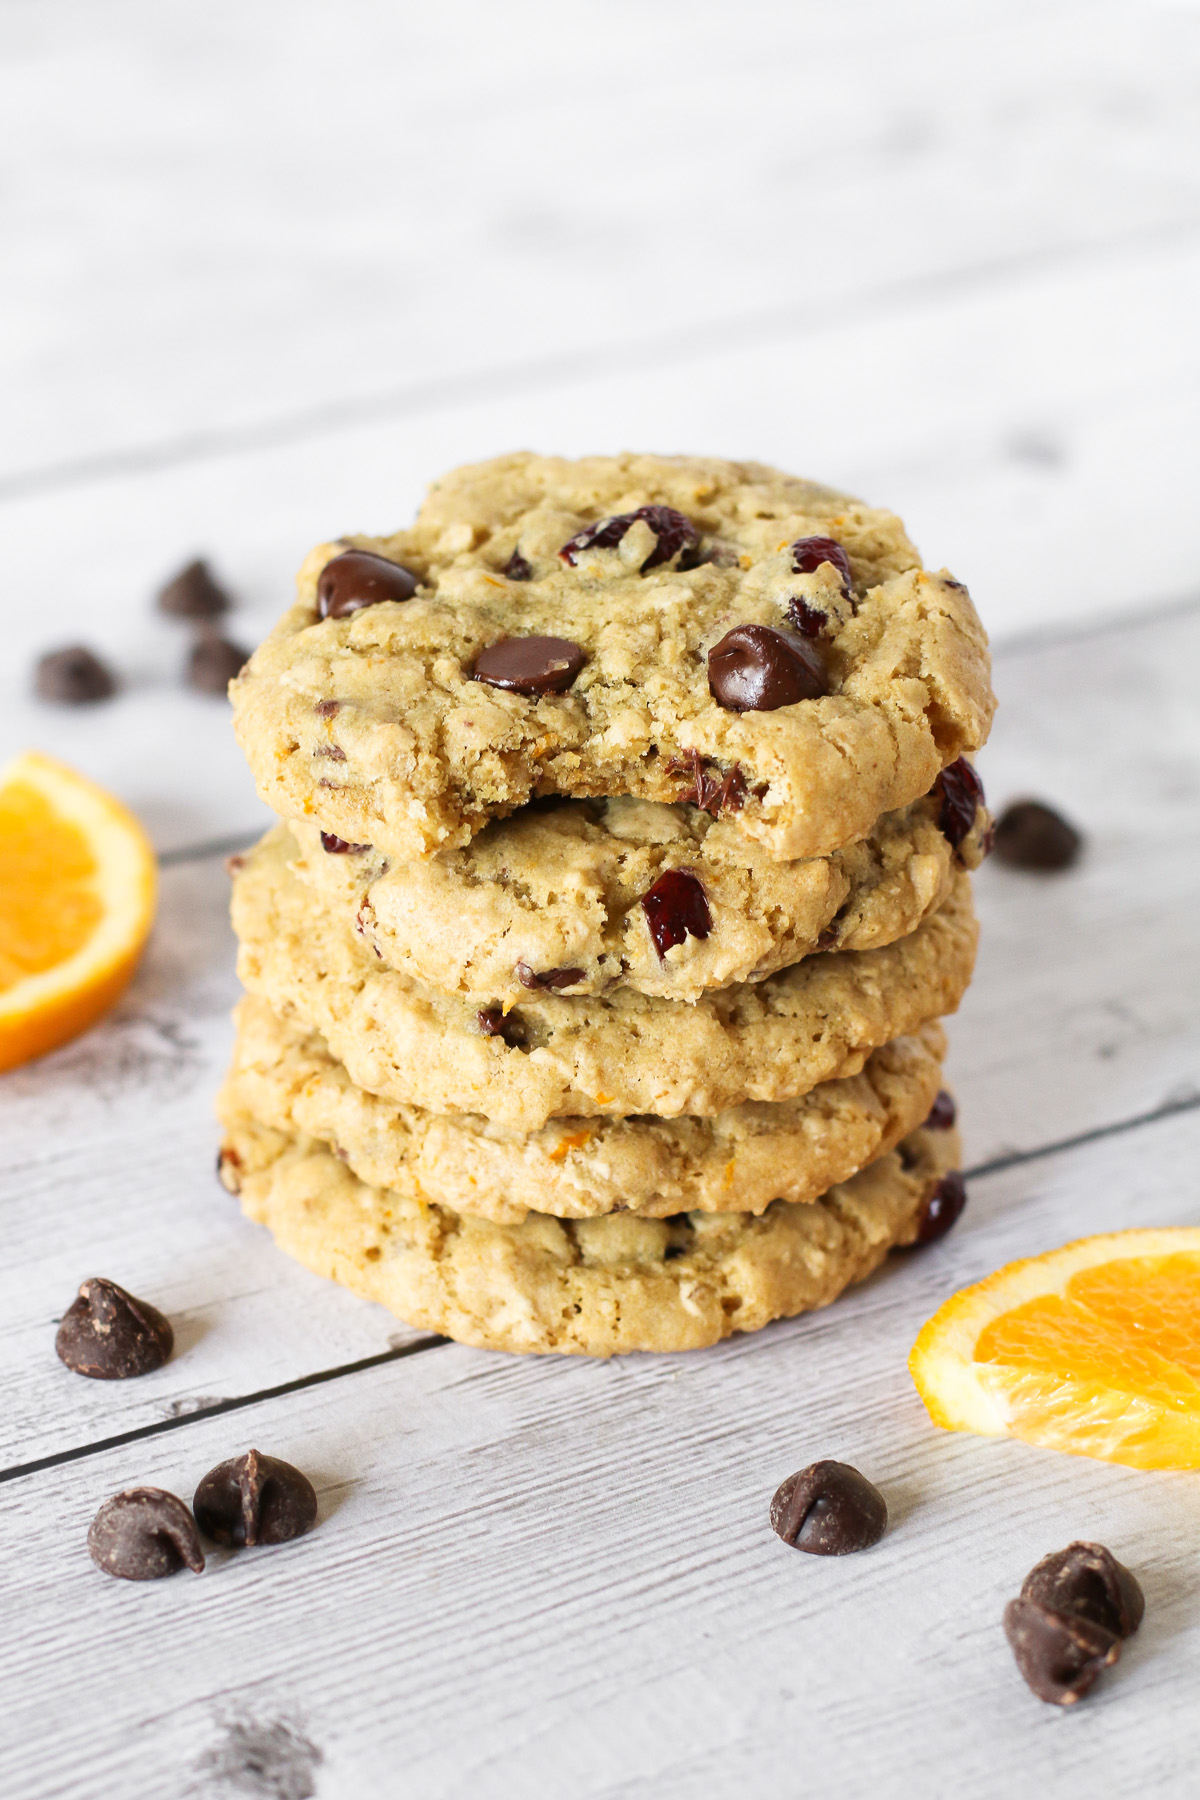 Gluten Free Vegan Cranberry Orange Chocolate Chip Cookies. Chewy cookies with fresh orange zest, sweet dried cranberries and lots of dark chocolate chips!